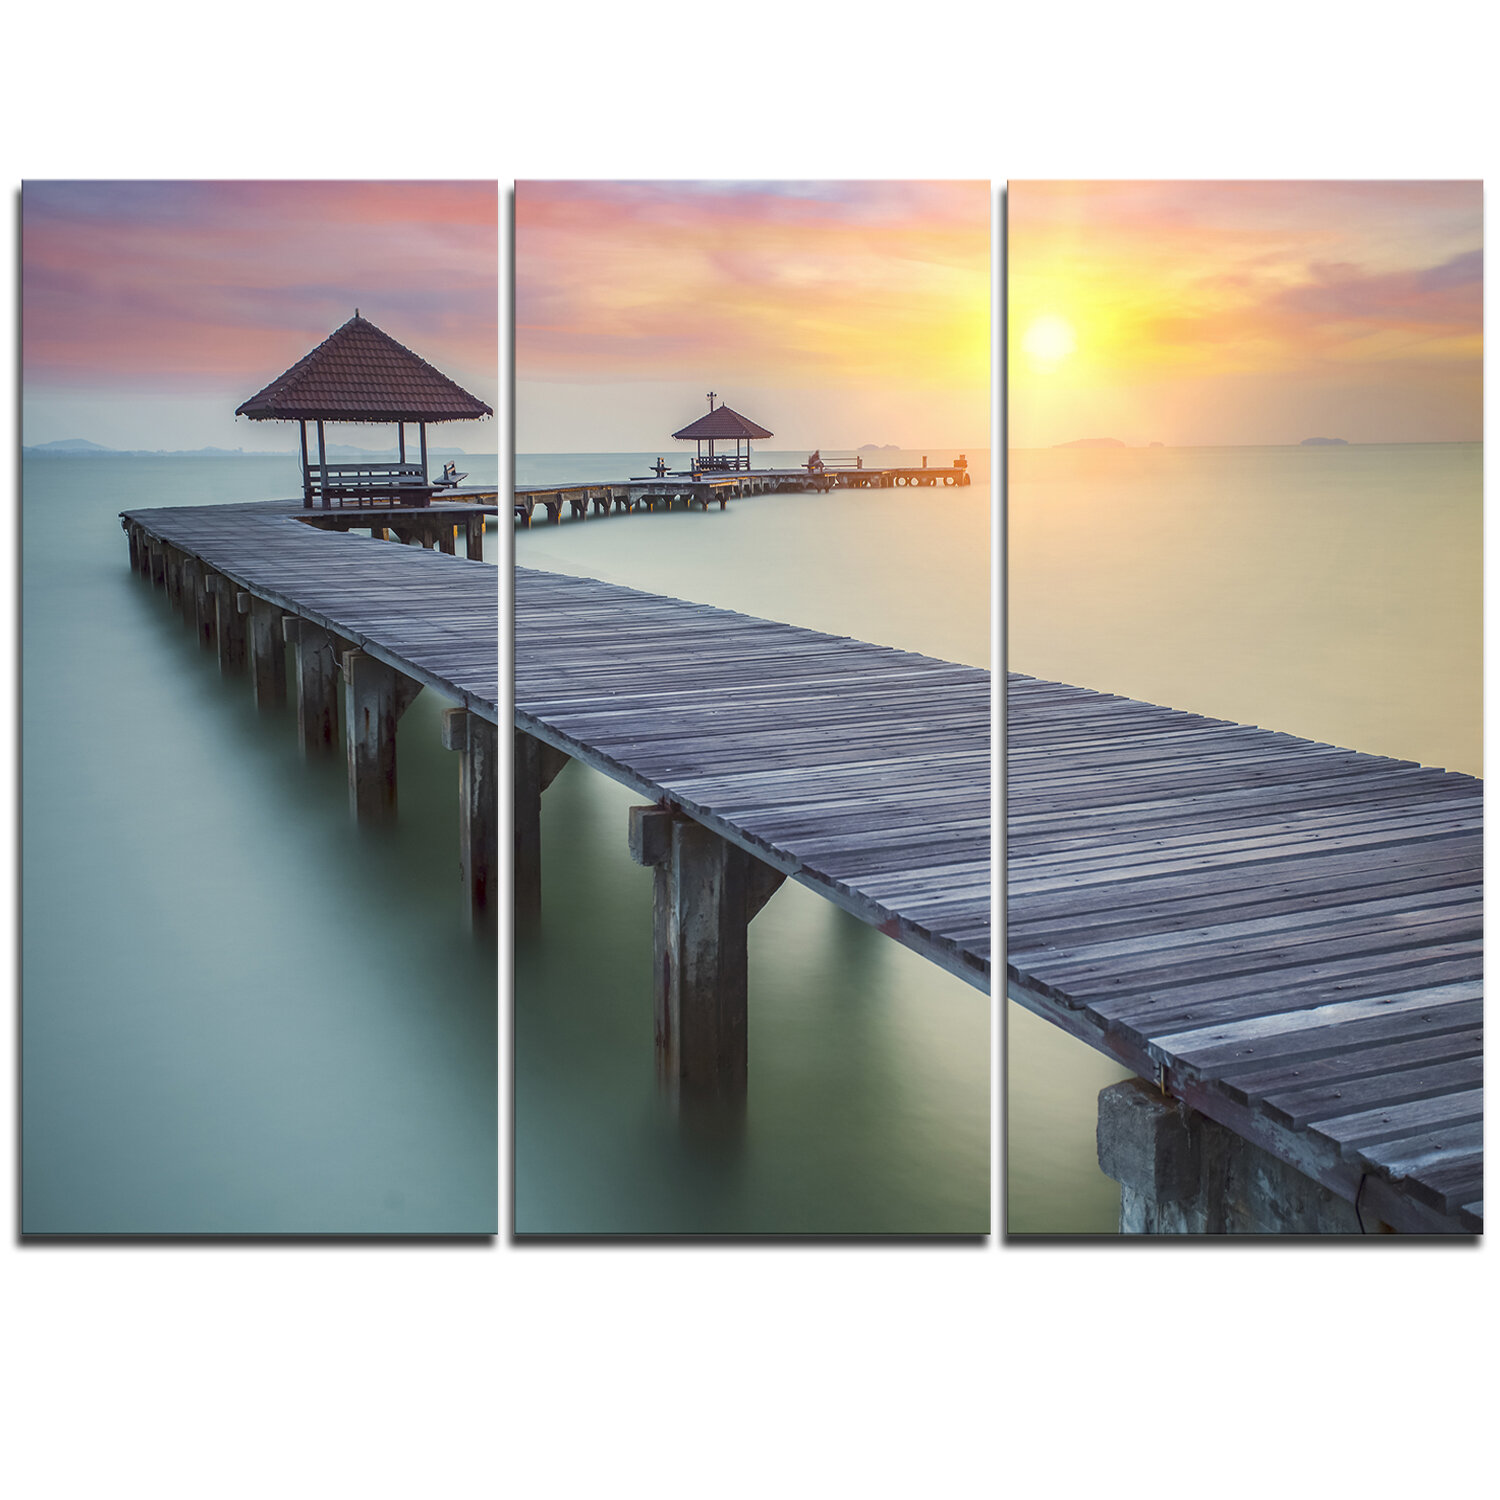 Designart Long Wooden Bridge Into The Sunrise 3 Piece Graphic Art On Wrapped Canvas Set Wayfair